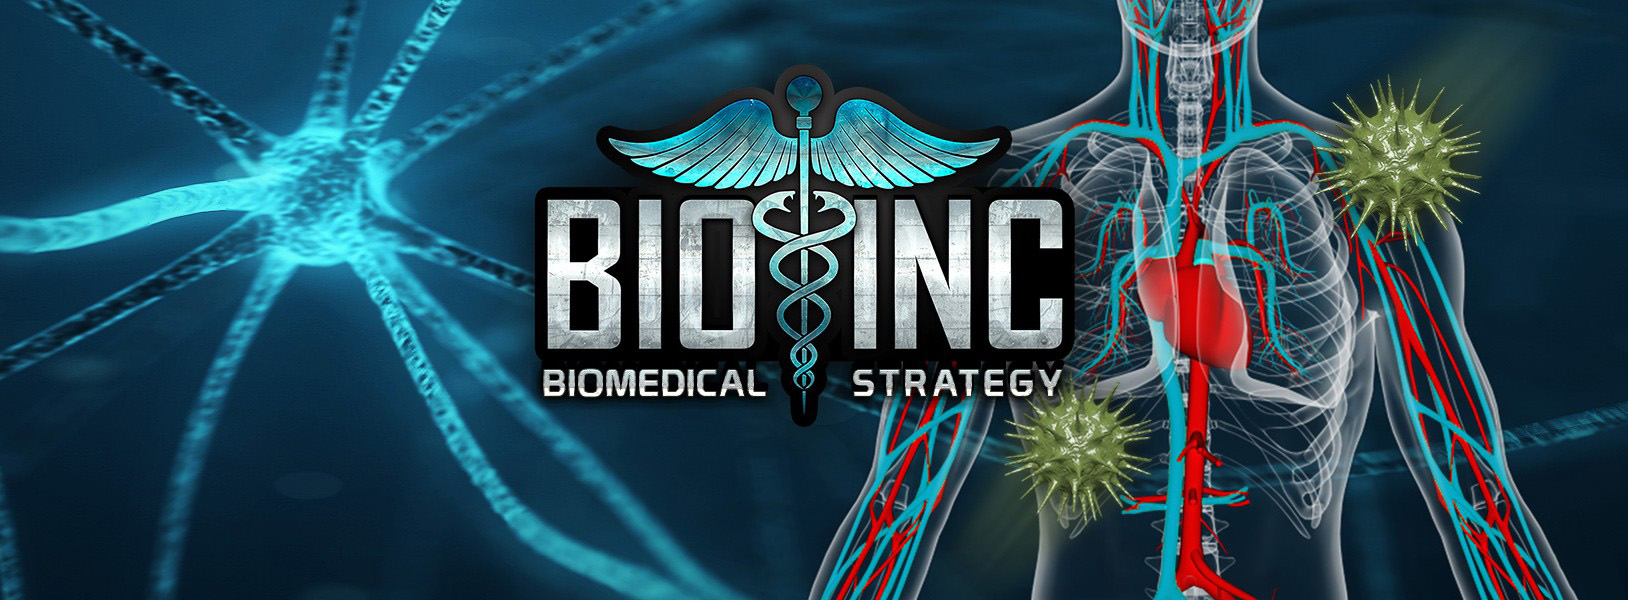 Bio Inc Biomedical Plague